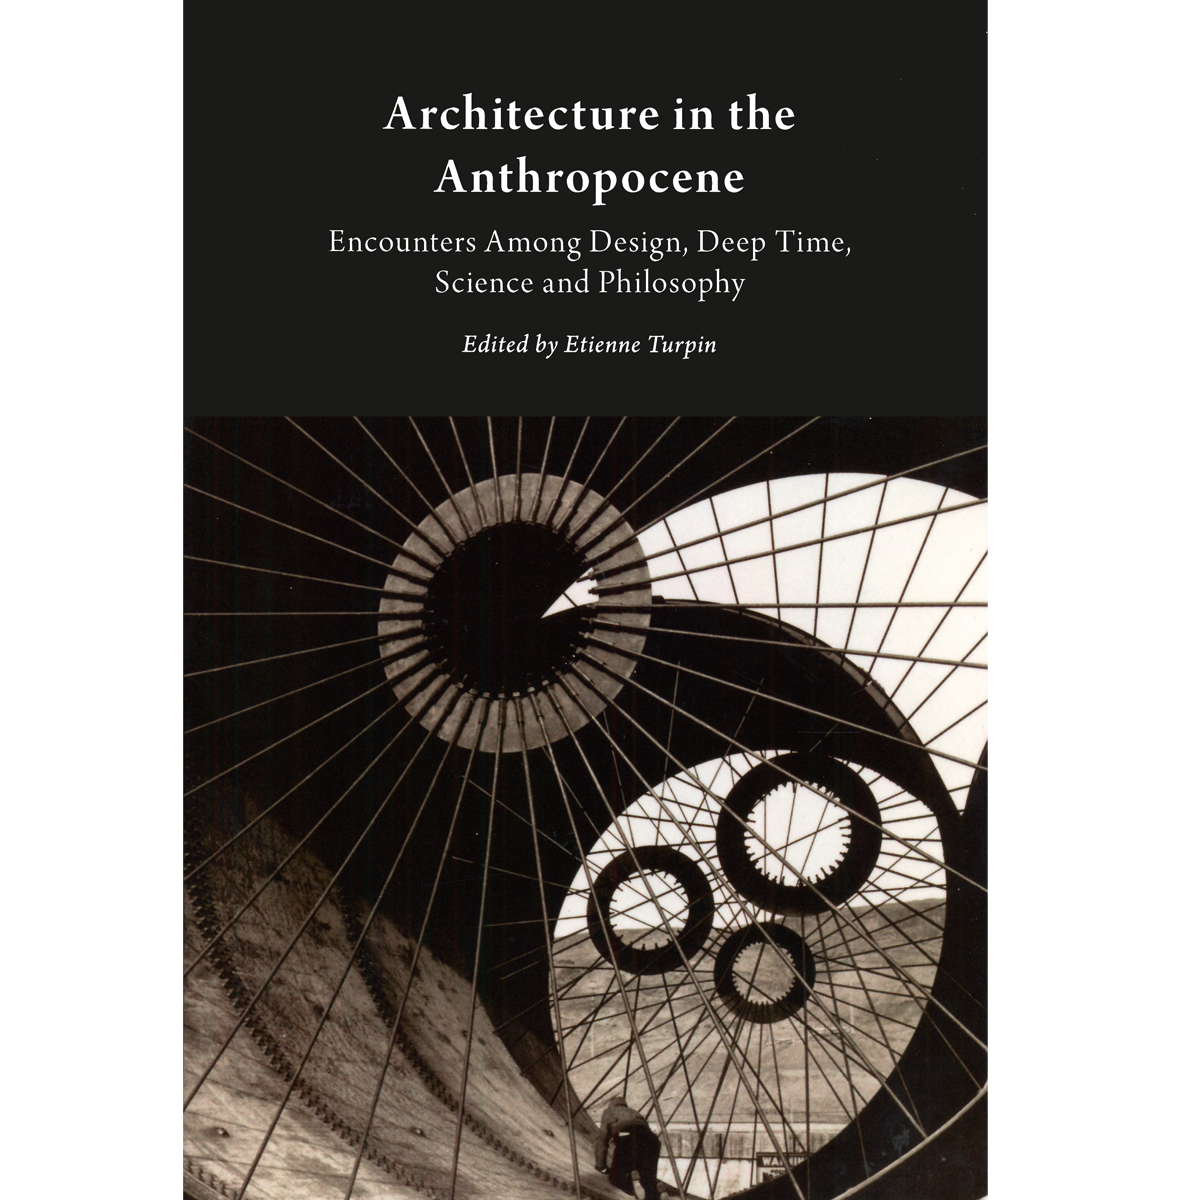 Architecture in the Anthropocene